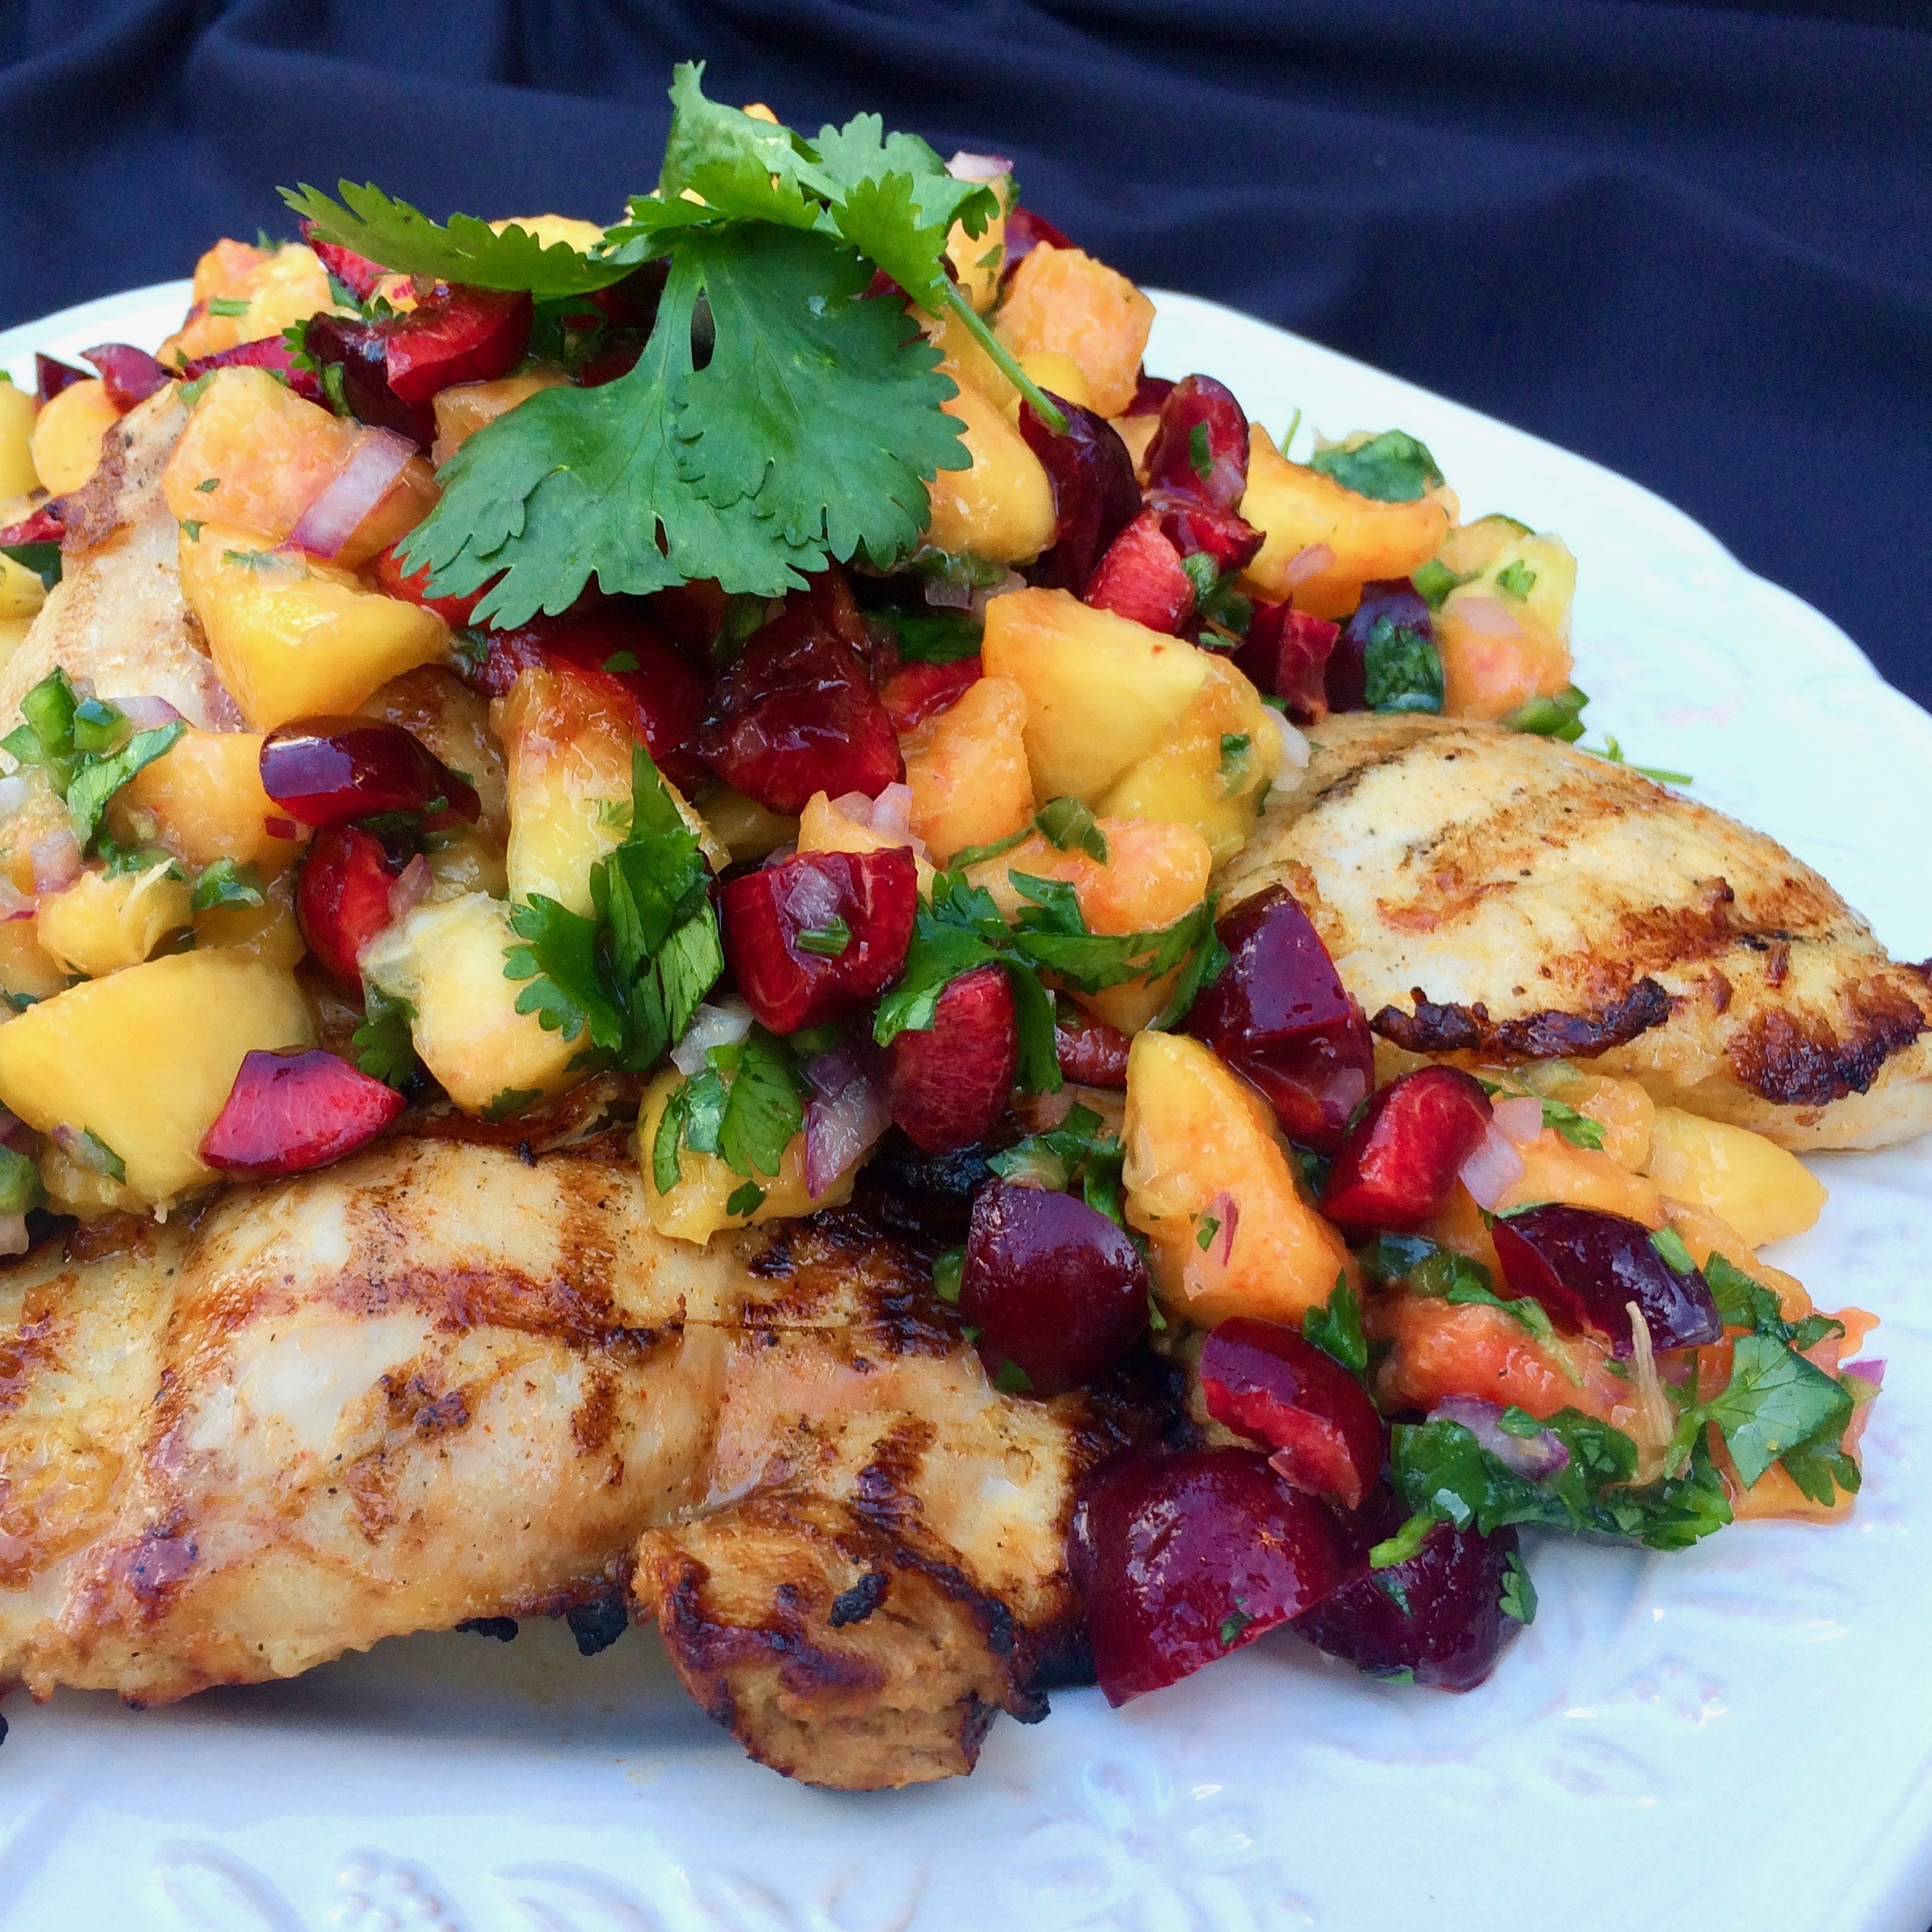 Grilled Chicken Thighs with Peach and Cherry Salsa